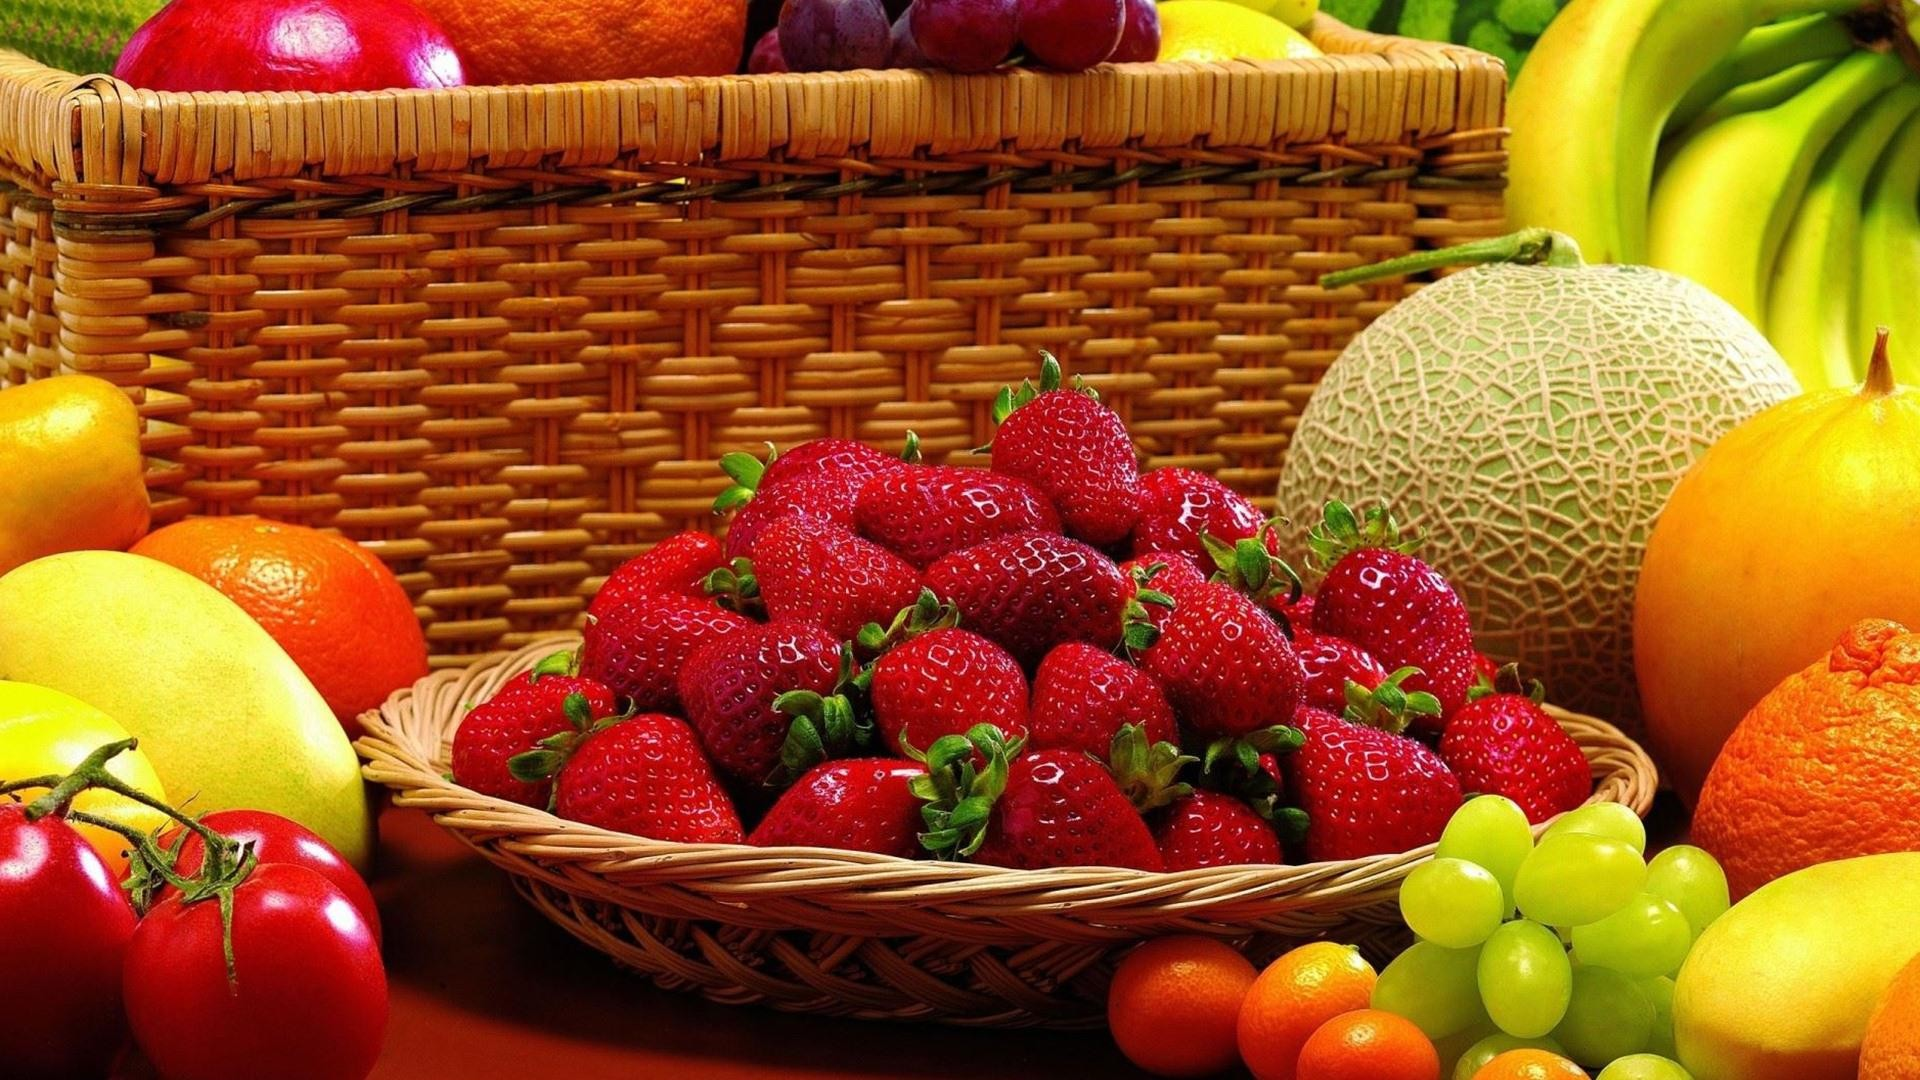 Healthy Food Wallpapers 11 Background Wallpaper